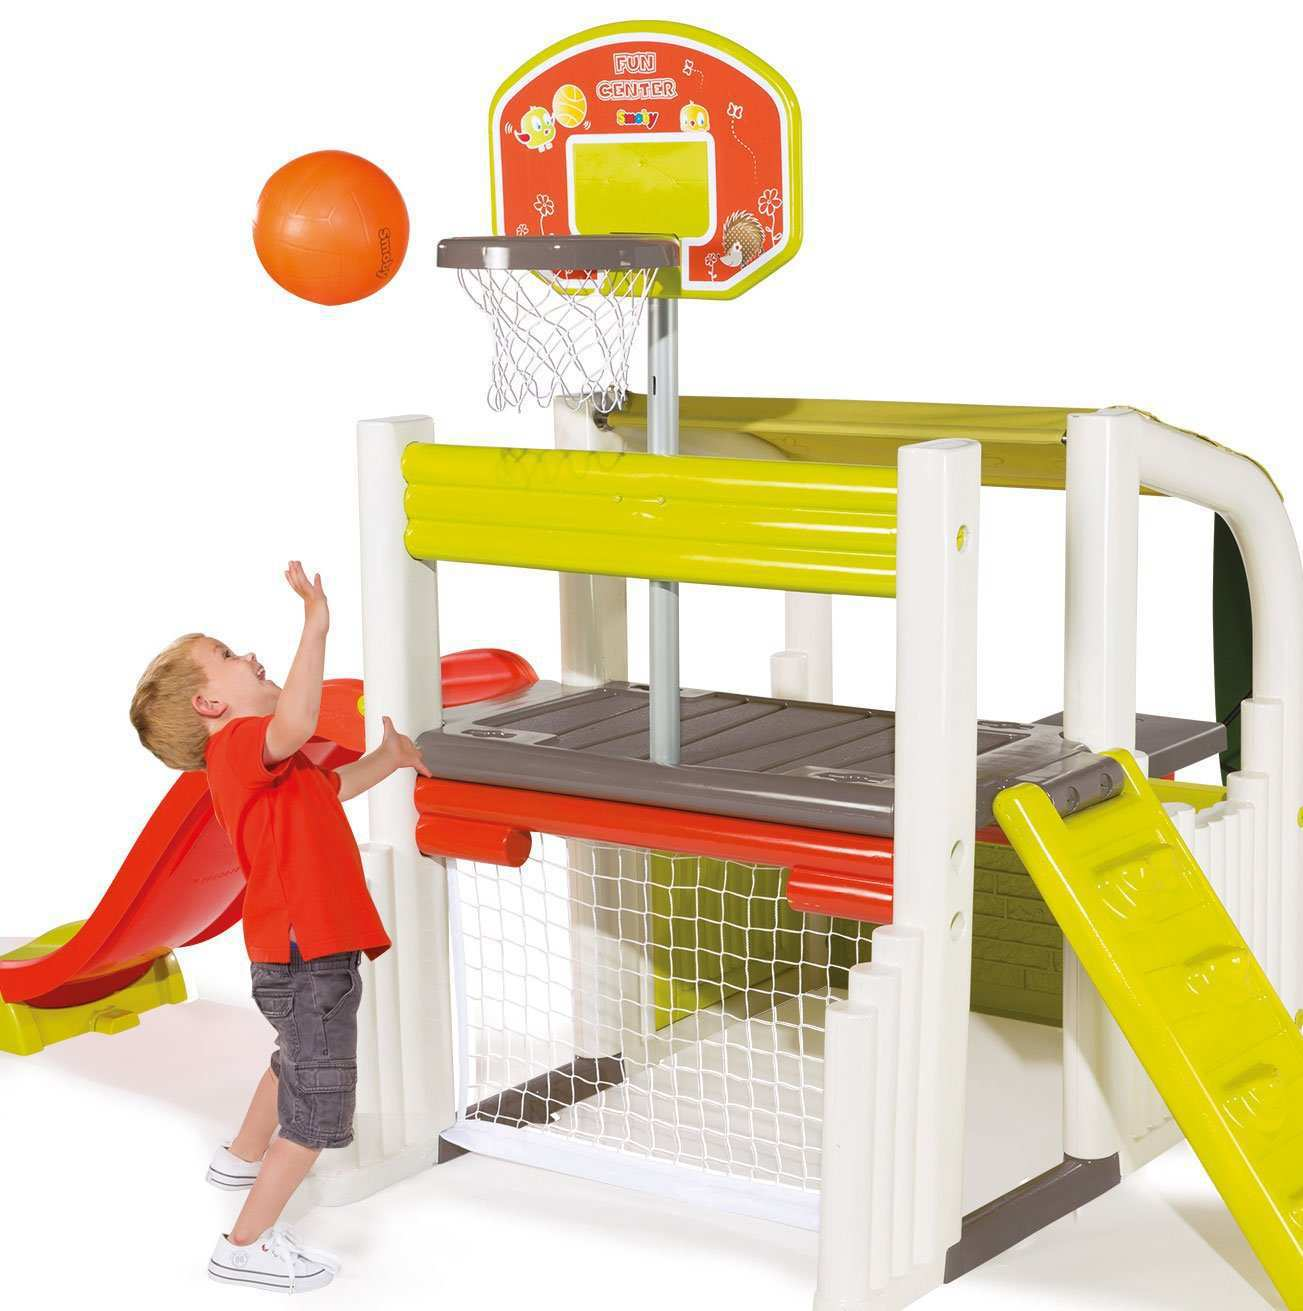 Comprar fun center infantil